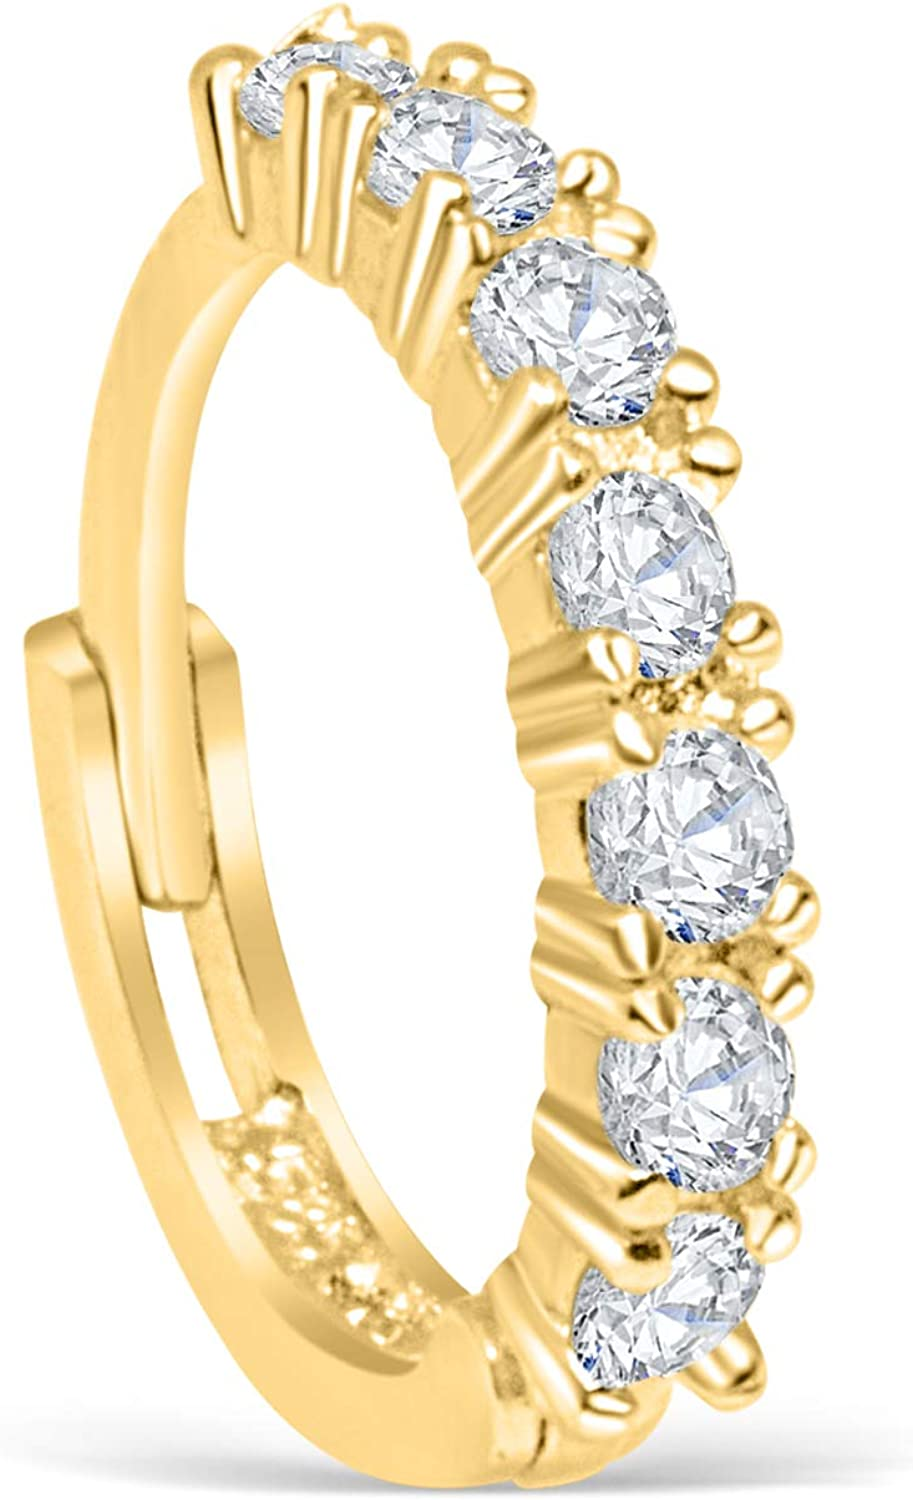 14K Real Solid Gold Jewelry Simulated Diamond Cz Open Round Inner Outer Conch Daith Cartilage Tragus Ear Segment Clicker Nose Ring Huggie Hoop Ring Earring Piercing For Women Girls